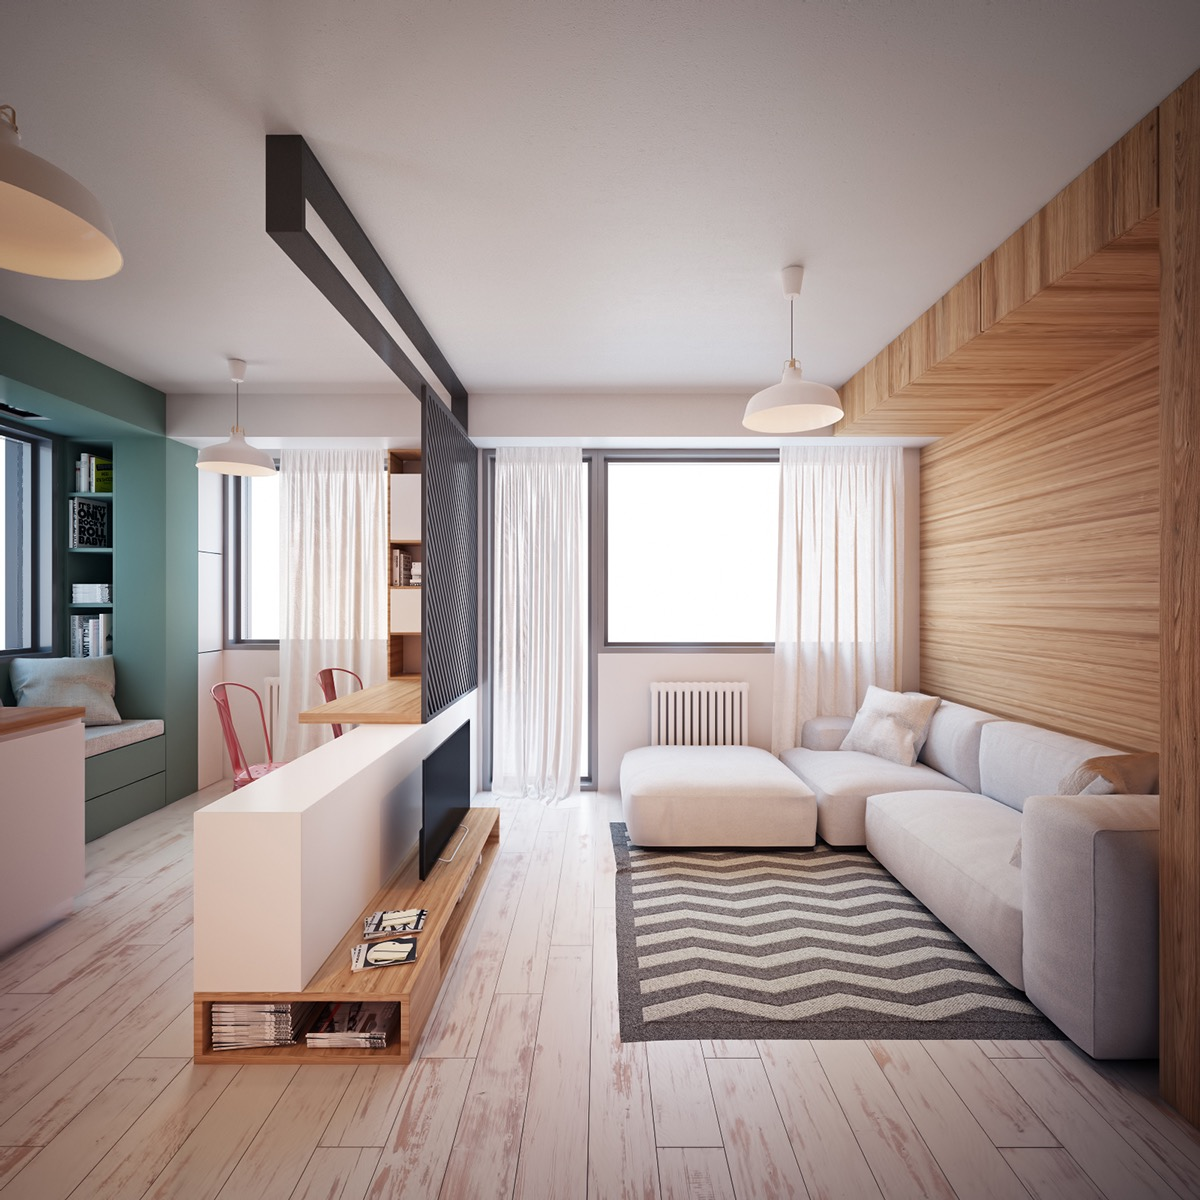 Ultra tiny home design 4 interiors under 40 square meters for 35m2 apartment design